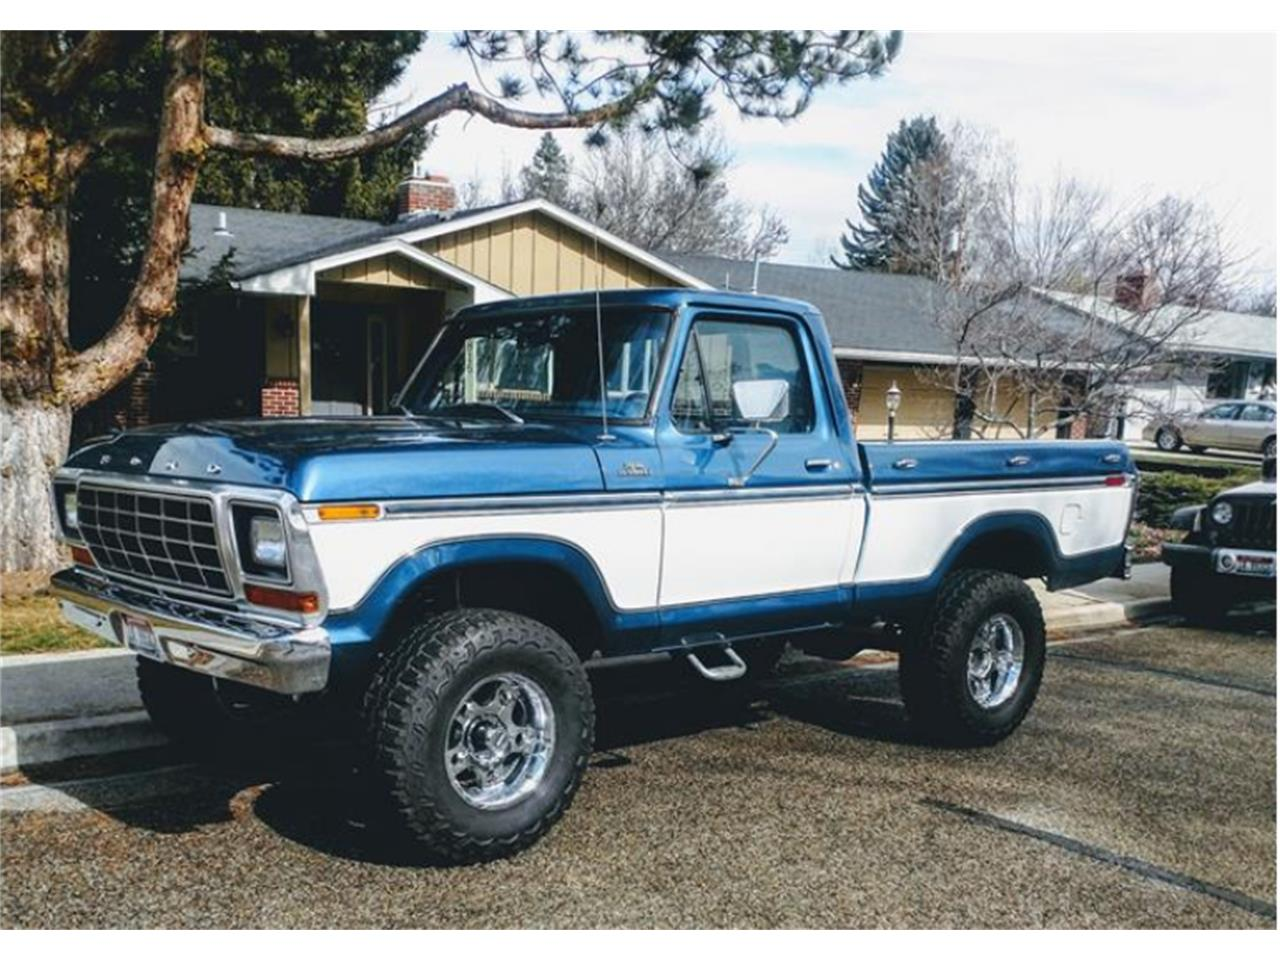 Large picture of 79 f150 n803